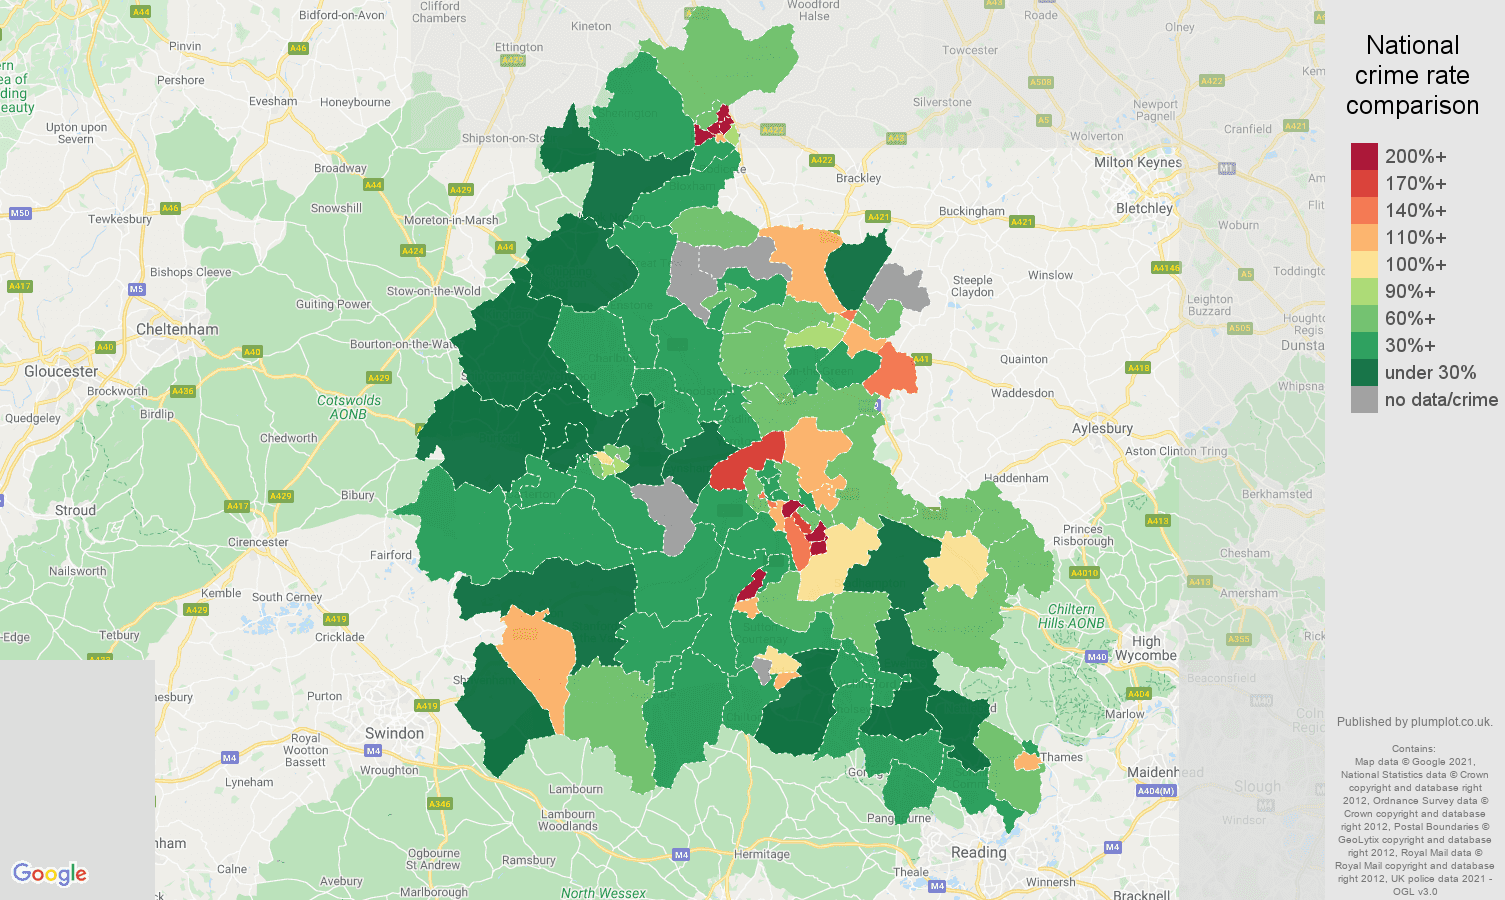 Oxfordshire drugs crime rate comparison map